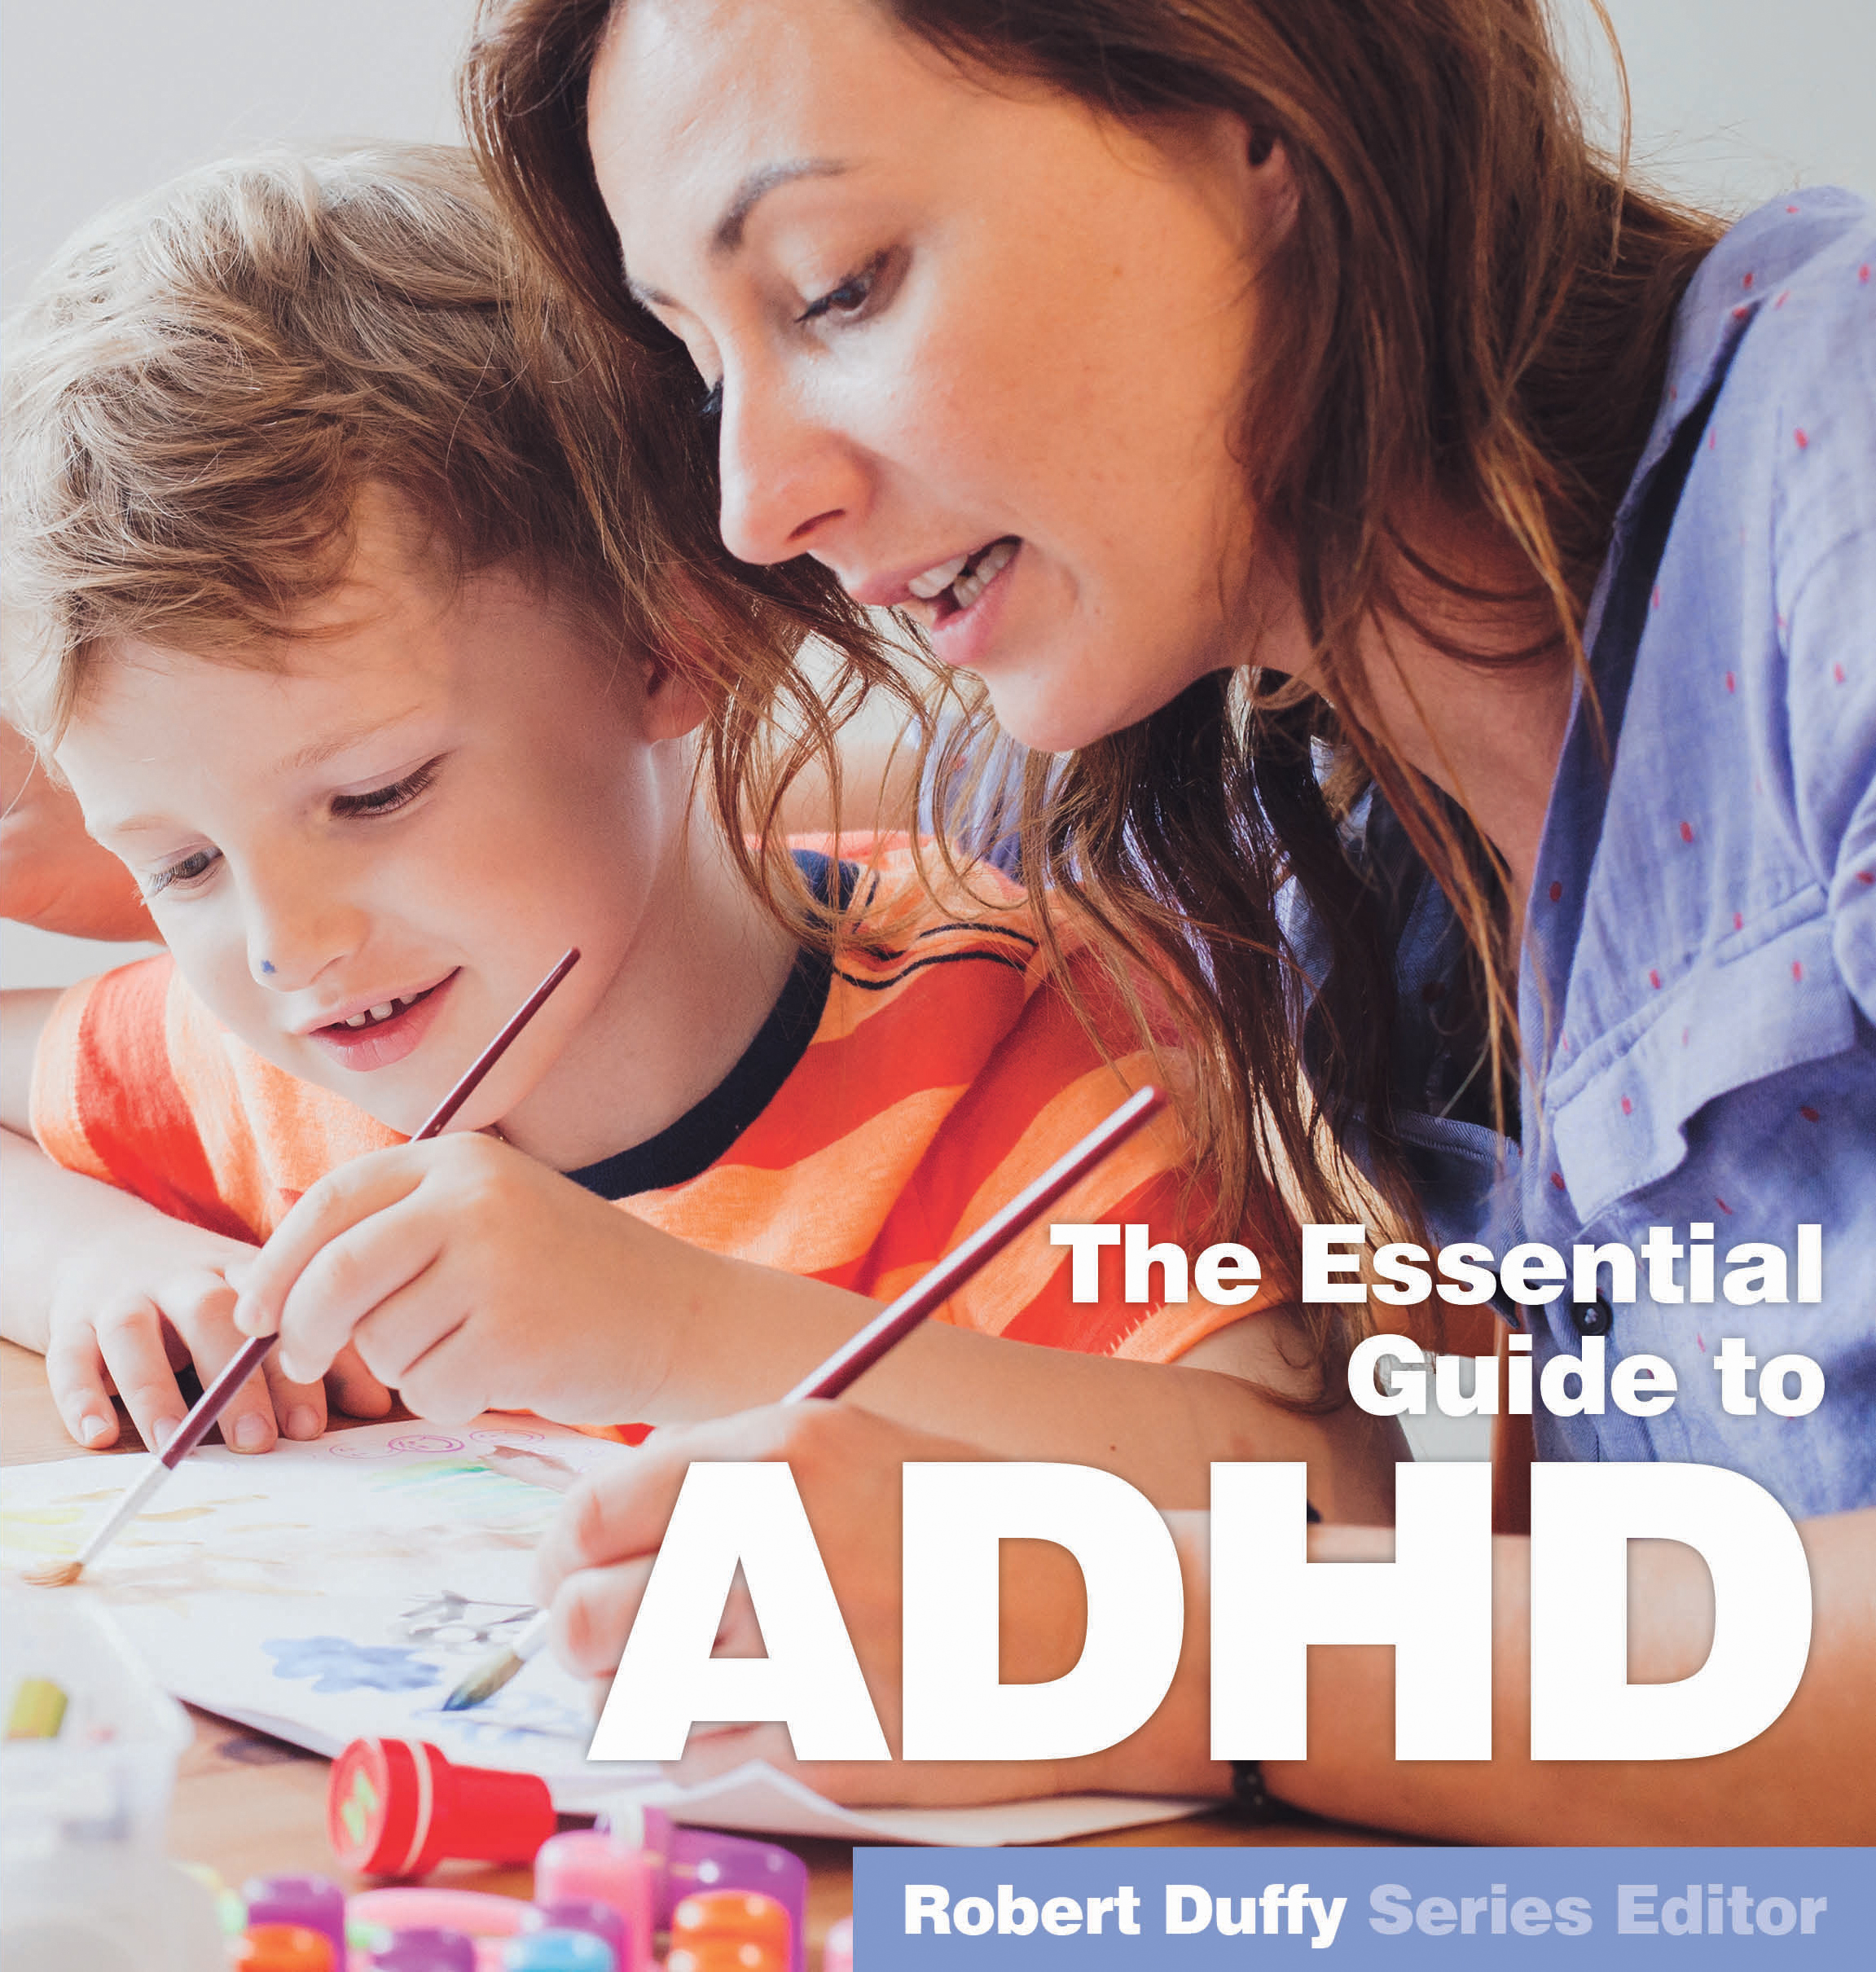 The Essential Guide to ADHD